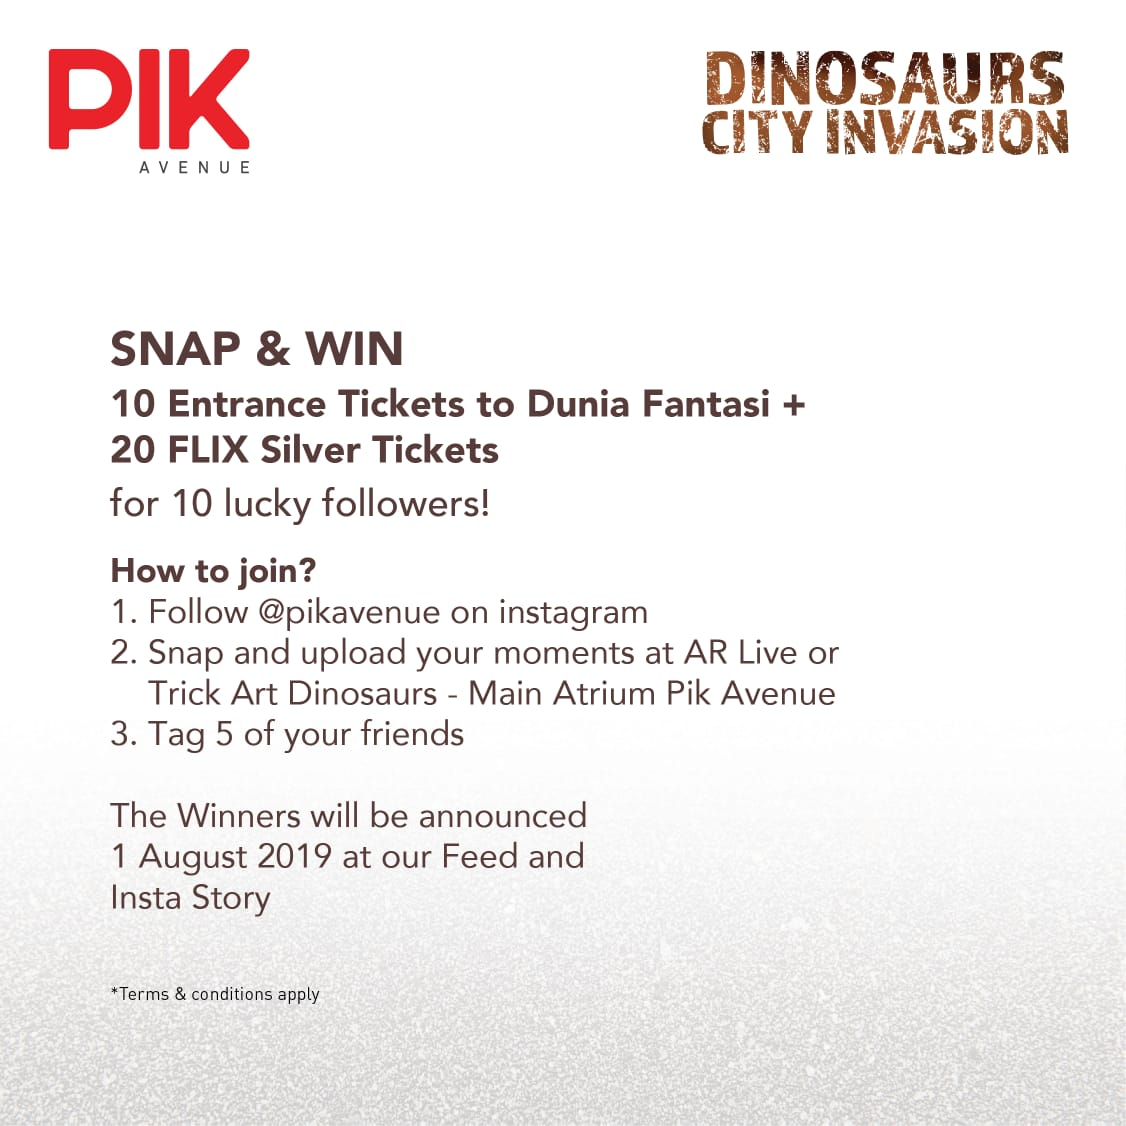 SNAP AND WIN - Snap and upload your moment at AR live or Trick Art Dinosaurs at Main Atrium PIK Avenue and get the prizes. Dunia Fantasi Tickets and FLIX Tickets